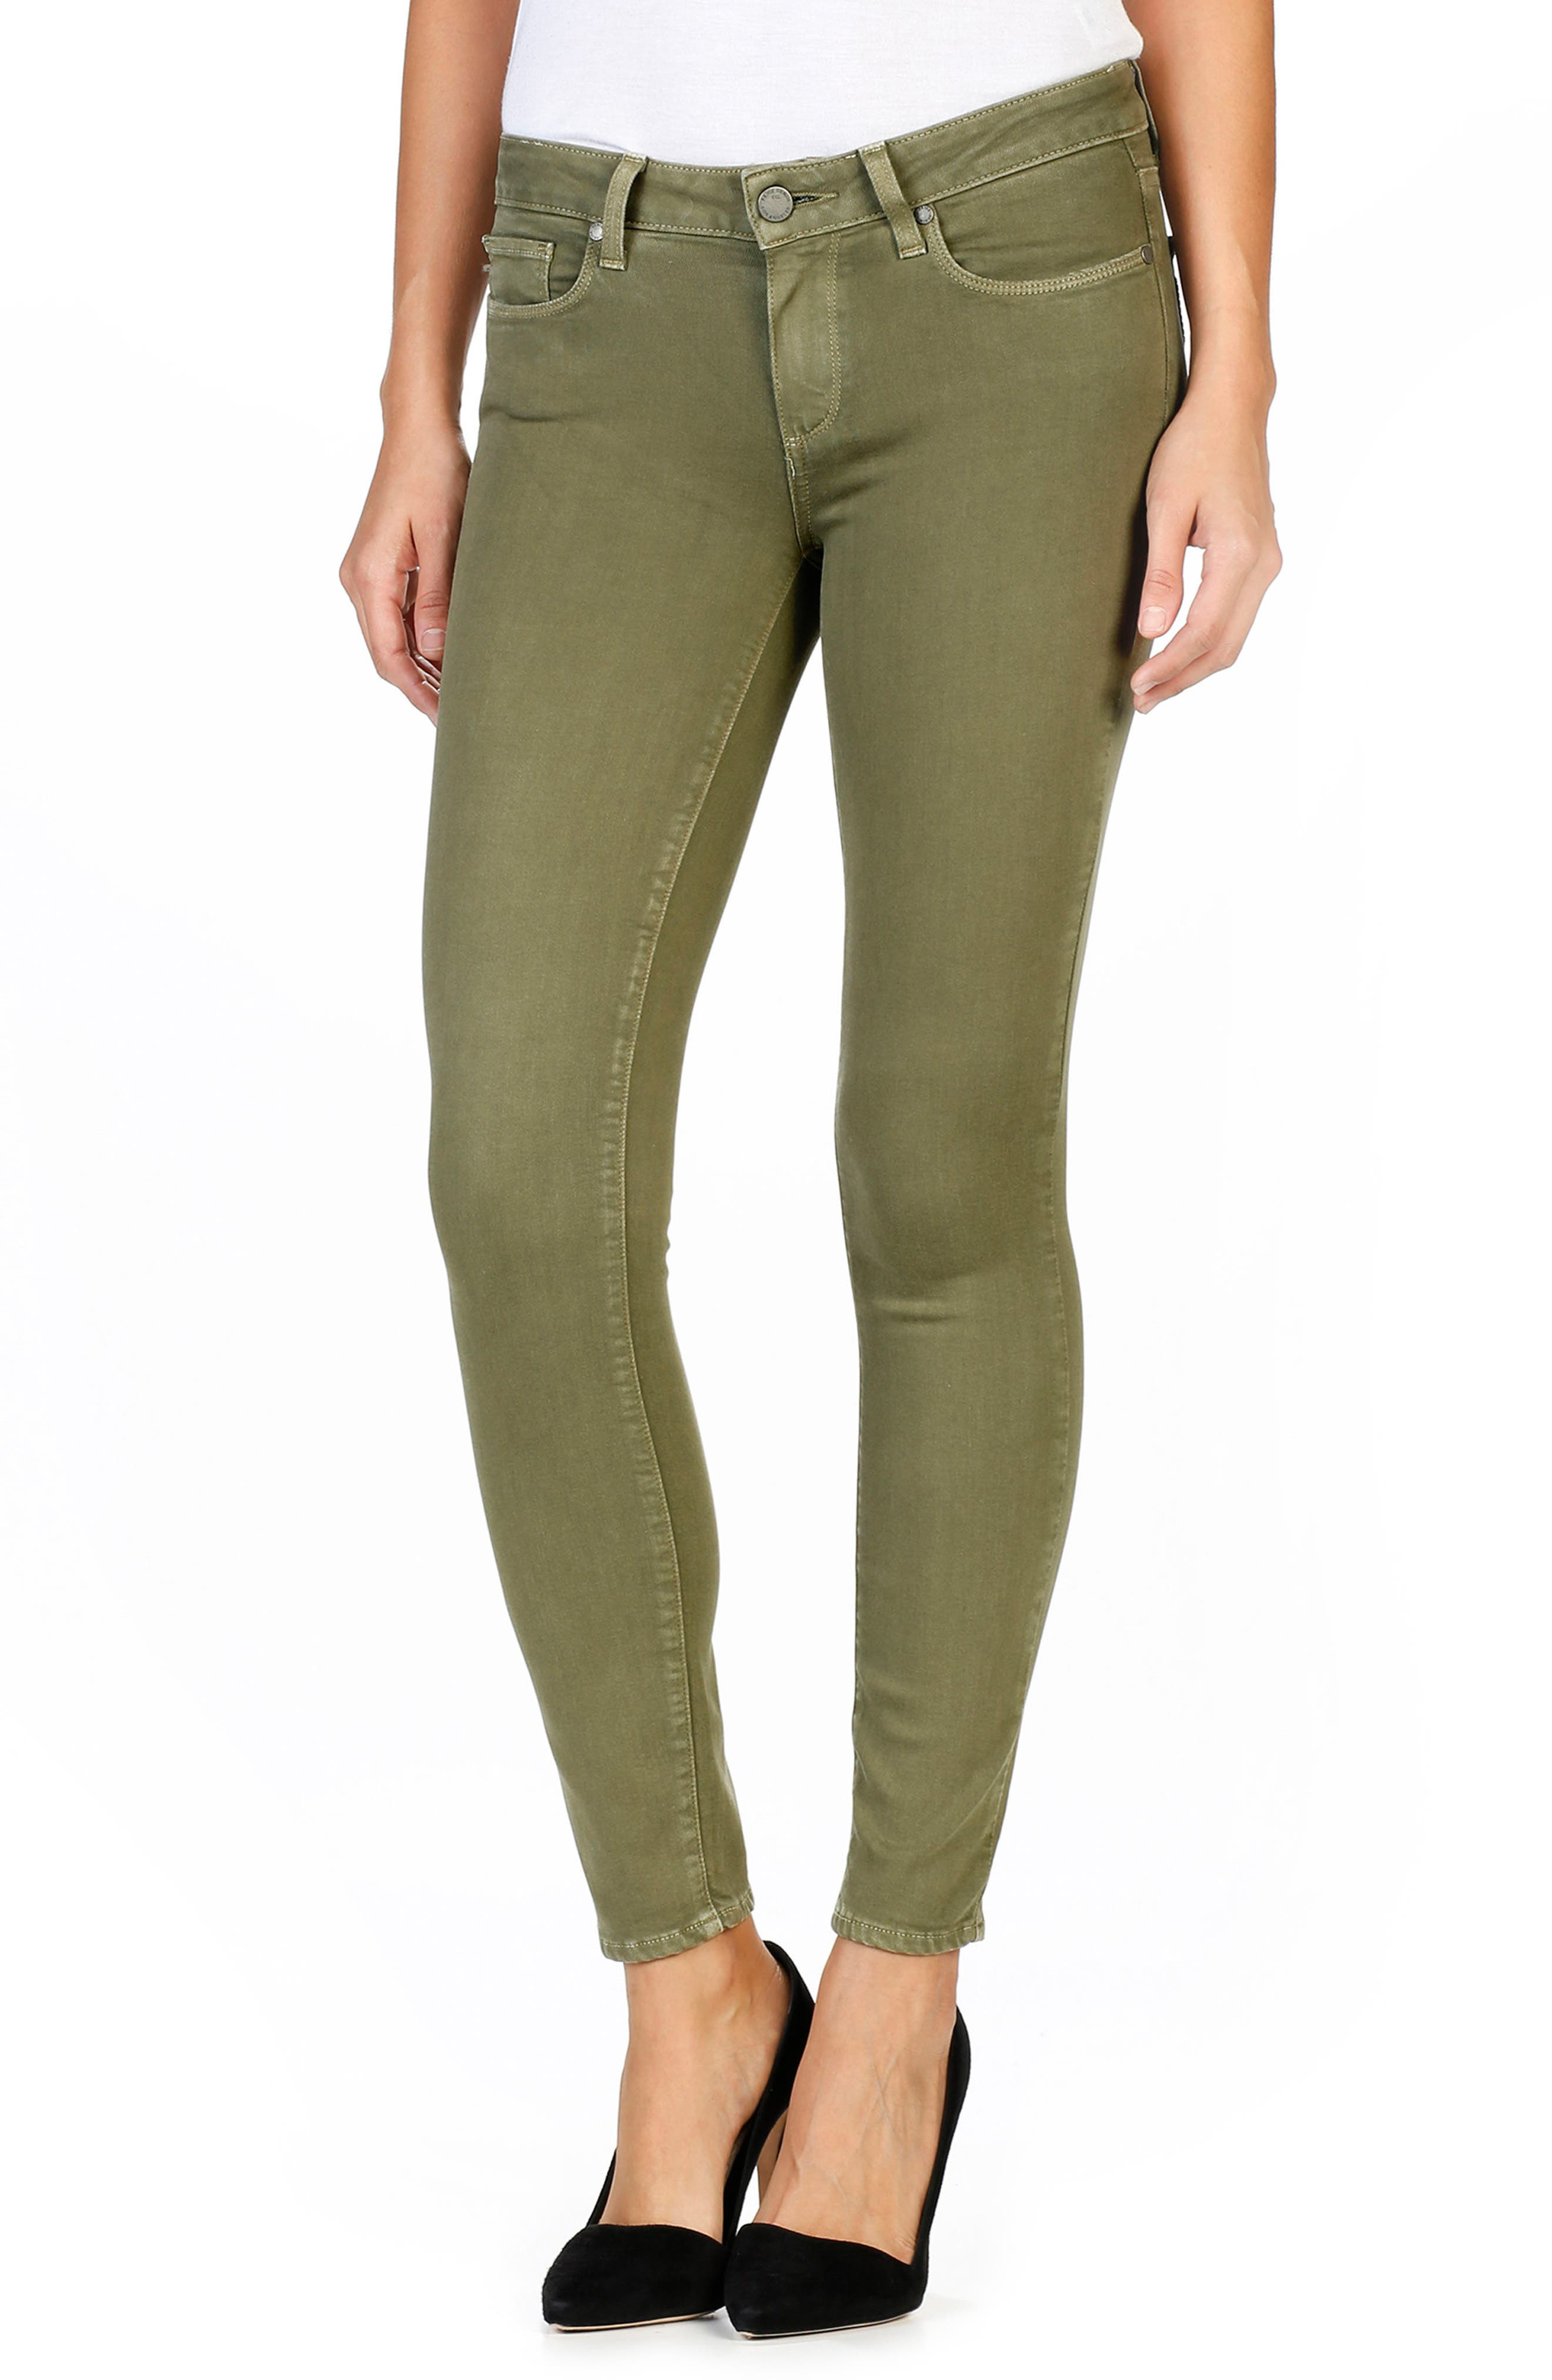 Alternate Image 1 Selected - PAIGE Transcend - Verdugo Ankle Skinny Jeans (Sahara Green)